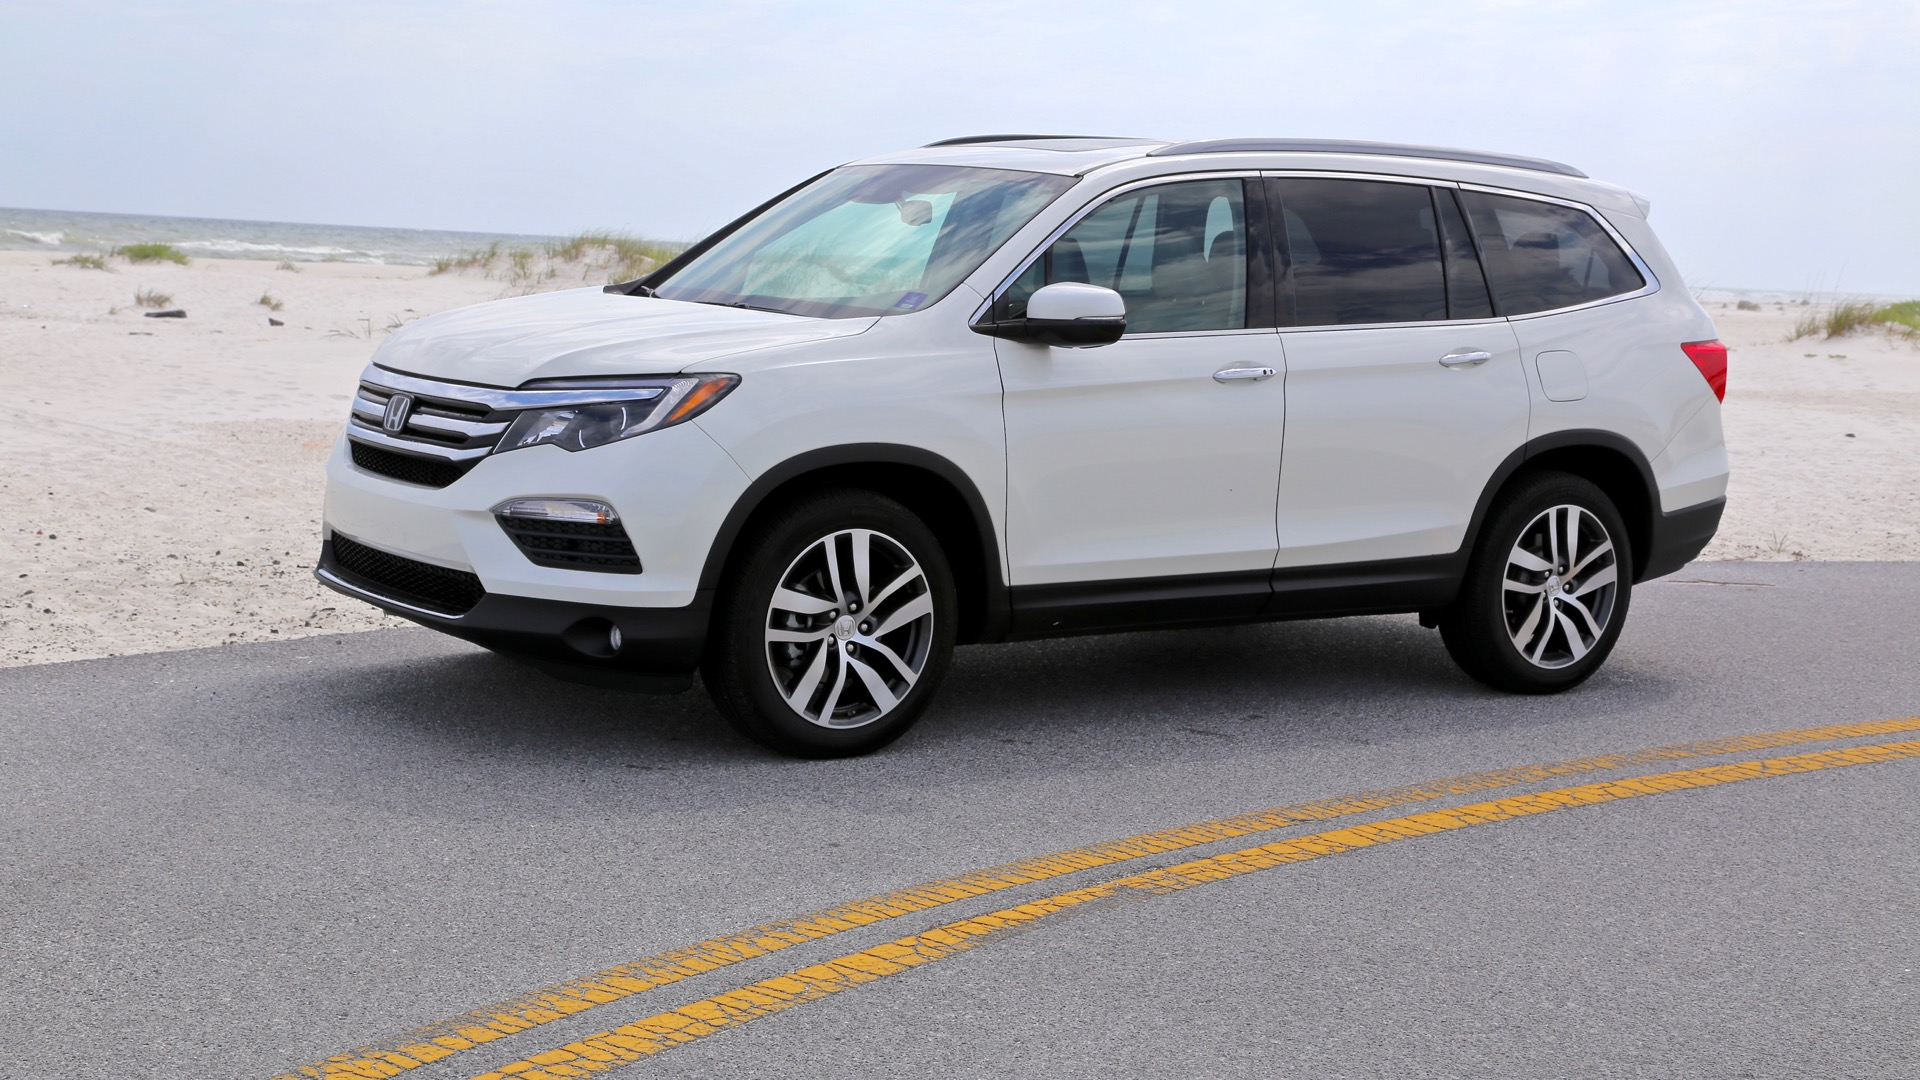 2016 Honda Pilot Touring long-term road test: what we'd change